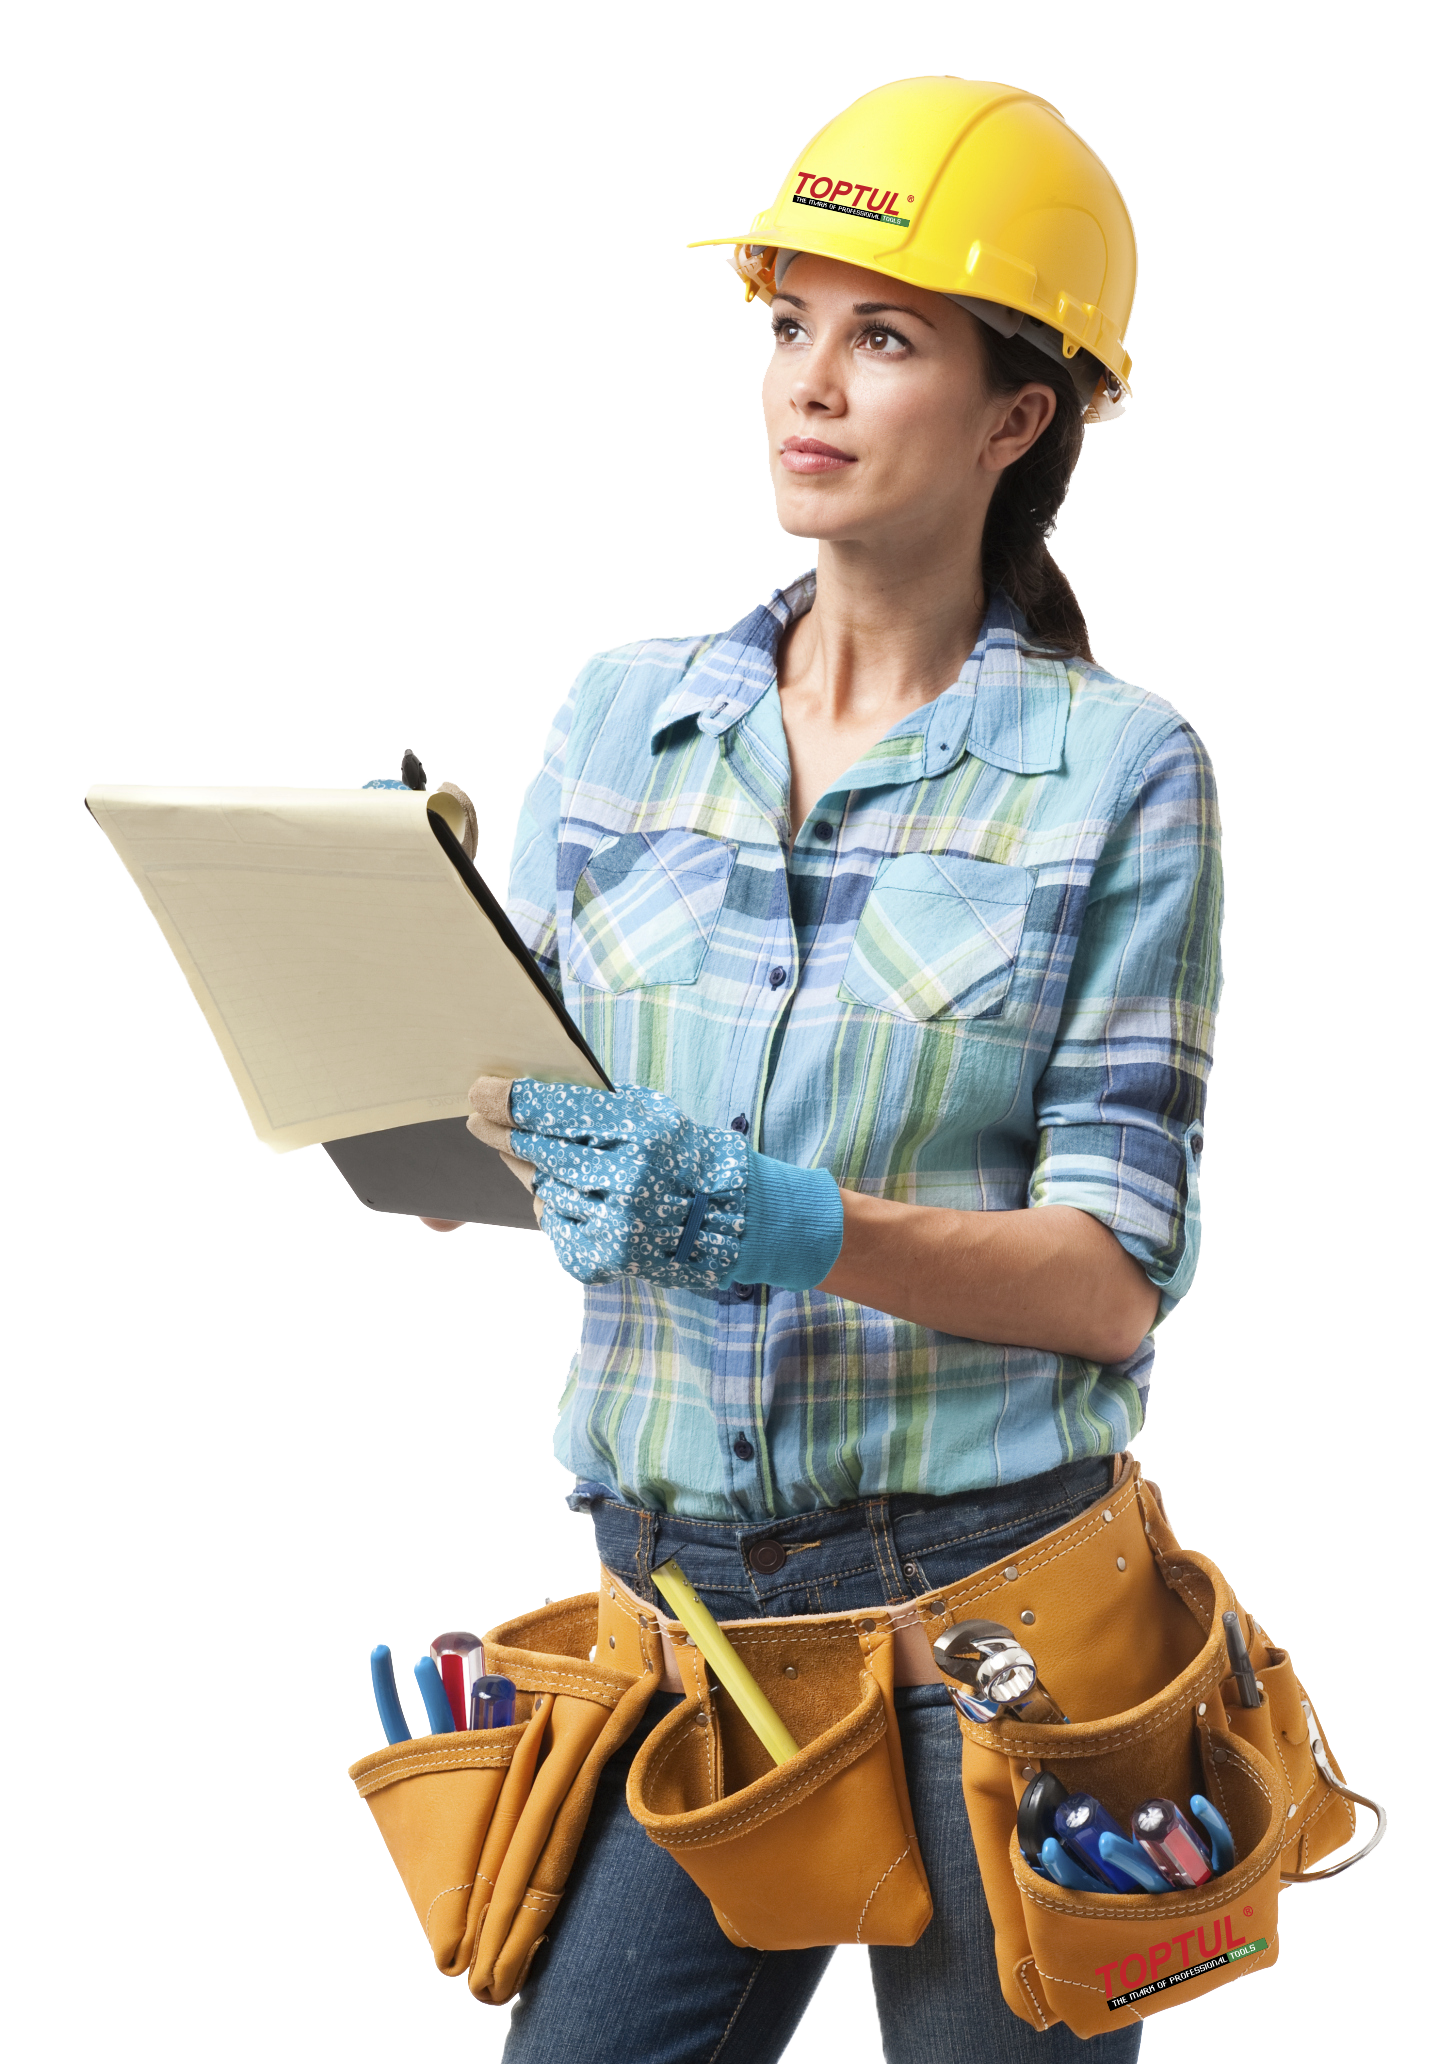 Employees   Industrialworker Hd Png - Construction Worker, Transparent background PNG HD thumbnail